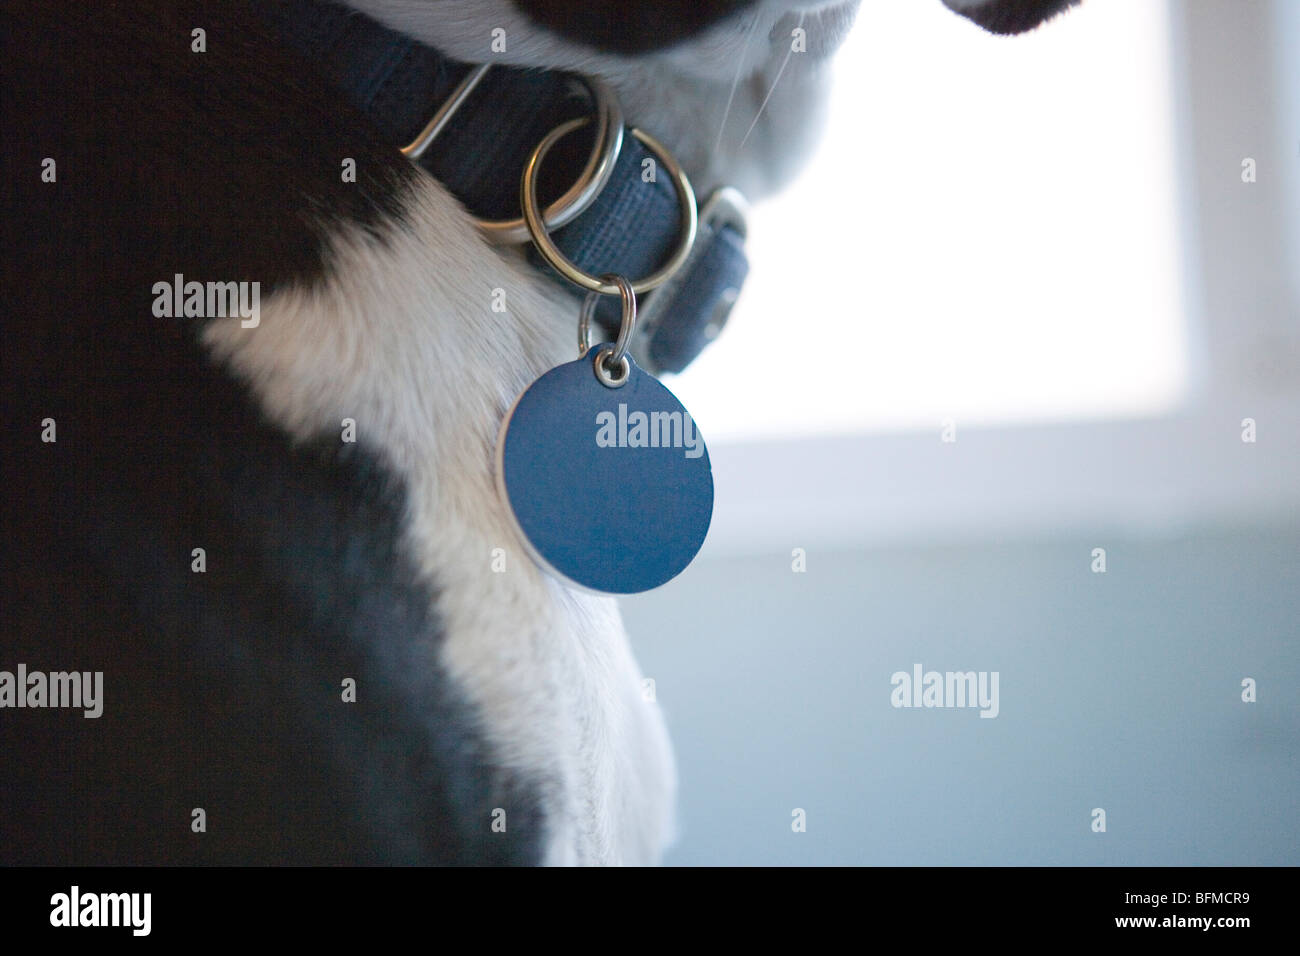 an identification tag hanging on a dog's collar, close up Stock Photo